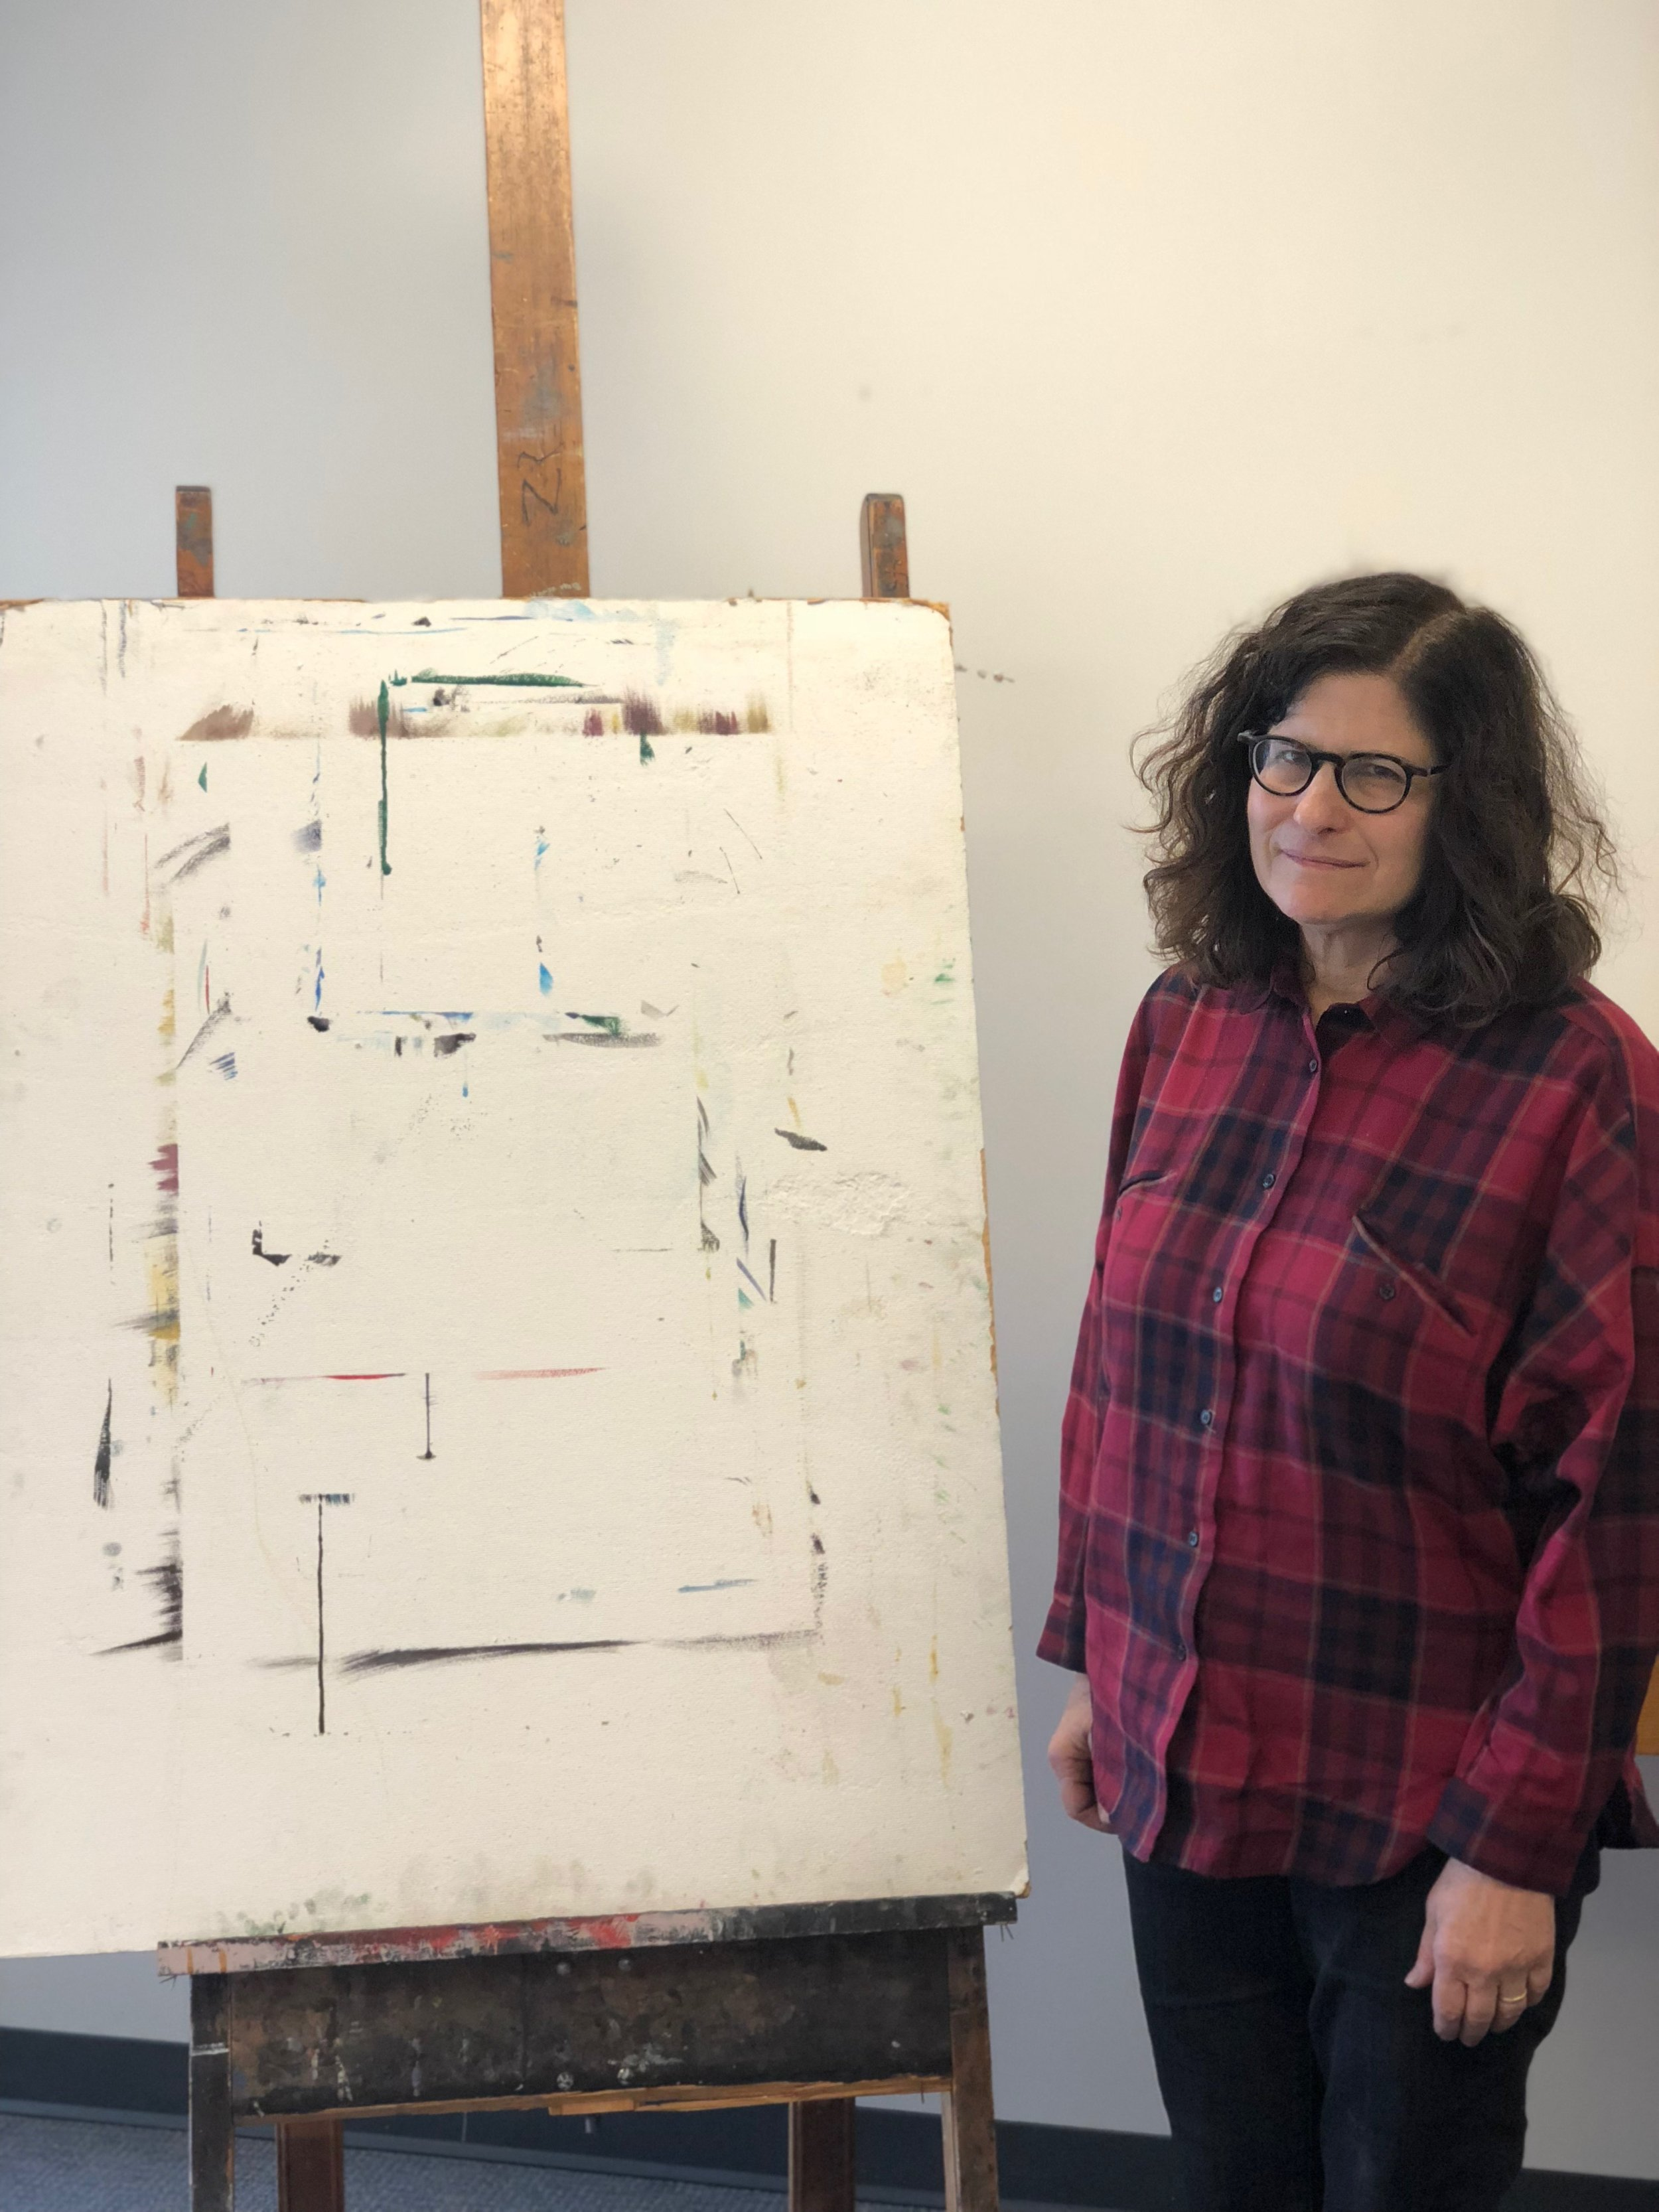 Charles Hobbs - Laura Newman is an abstract painter based in Brooklyn, NY. She has taught art at Vassar College for twelve years.